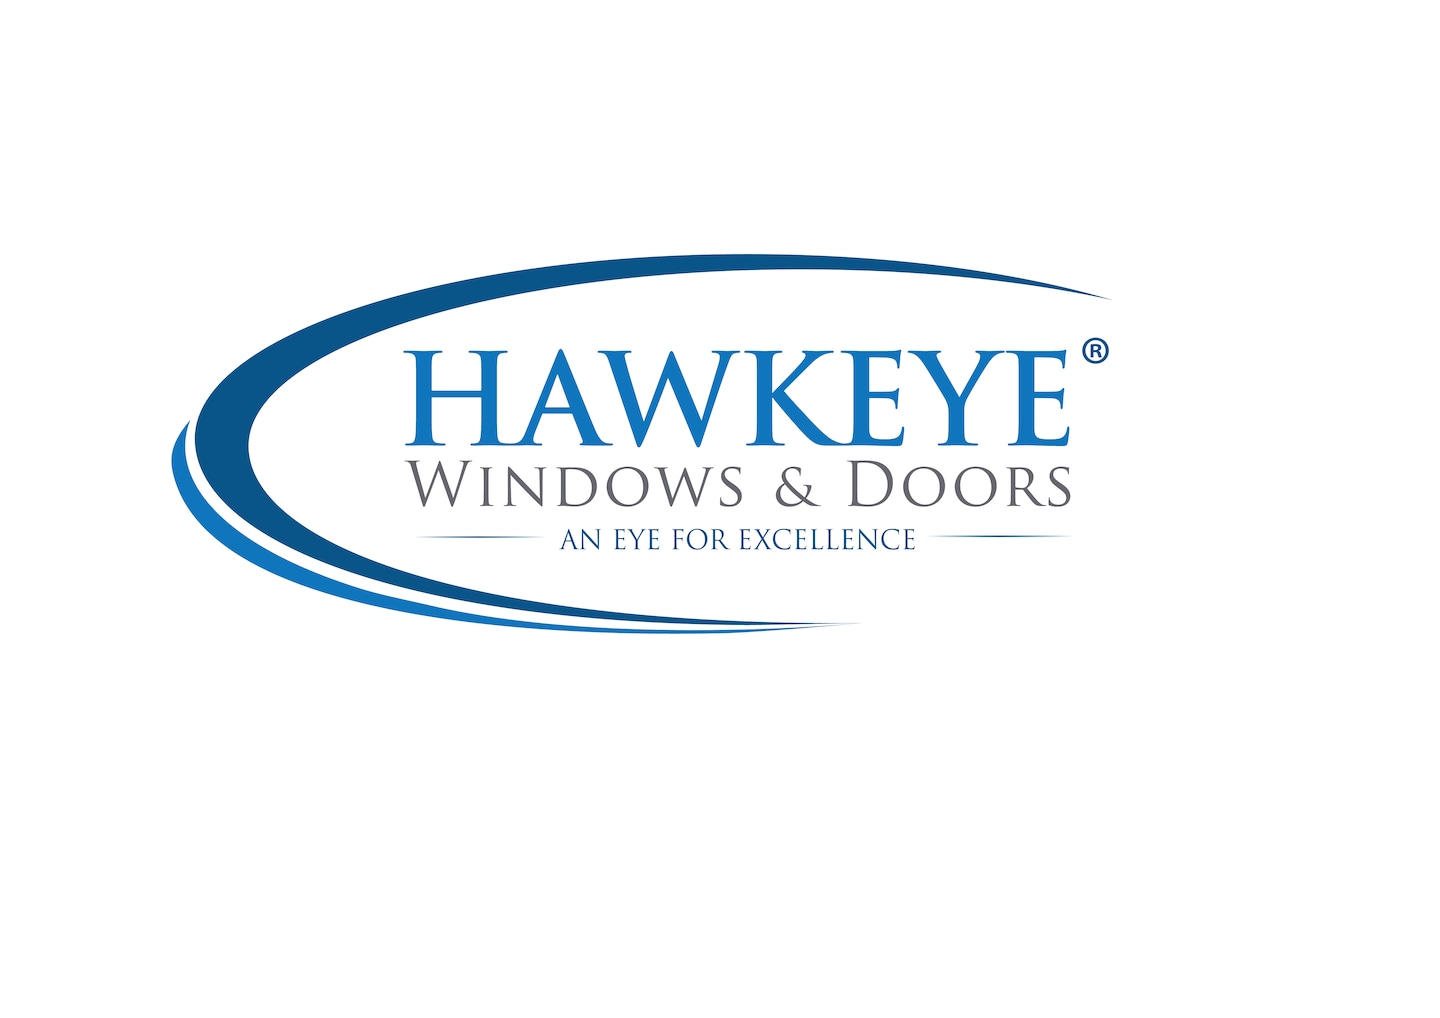 Hawkeye Windows & Doors, Inc